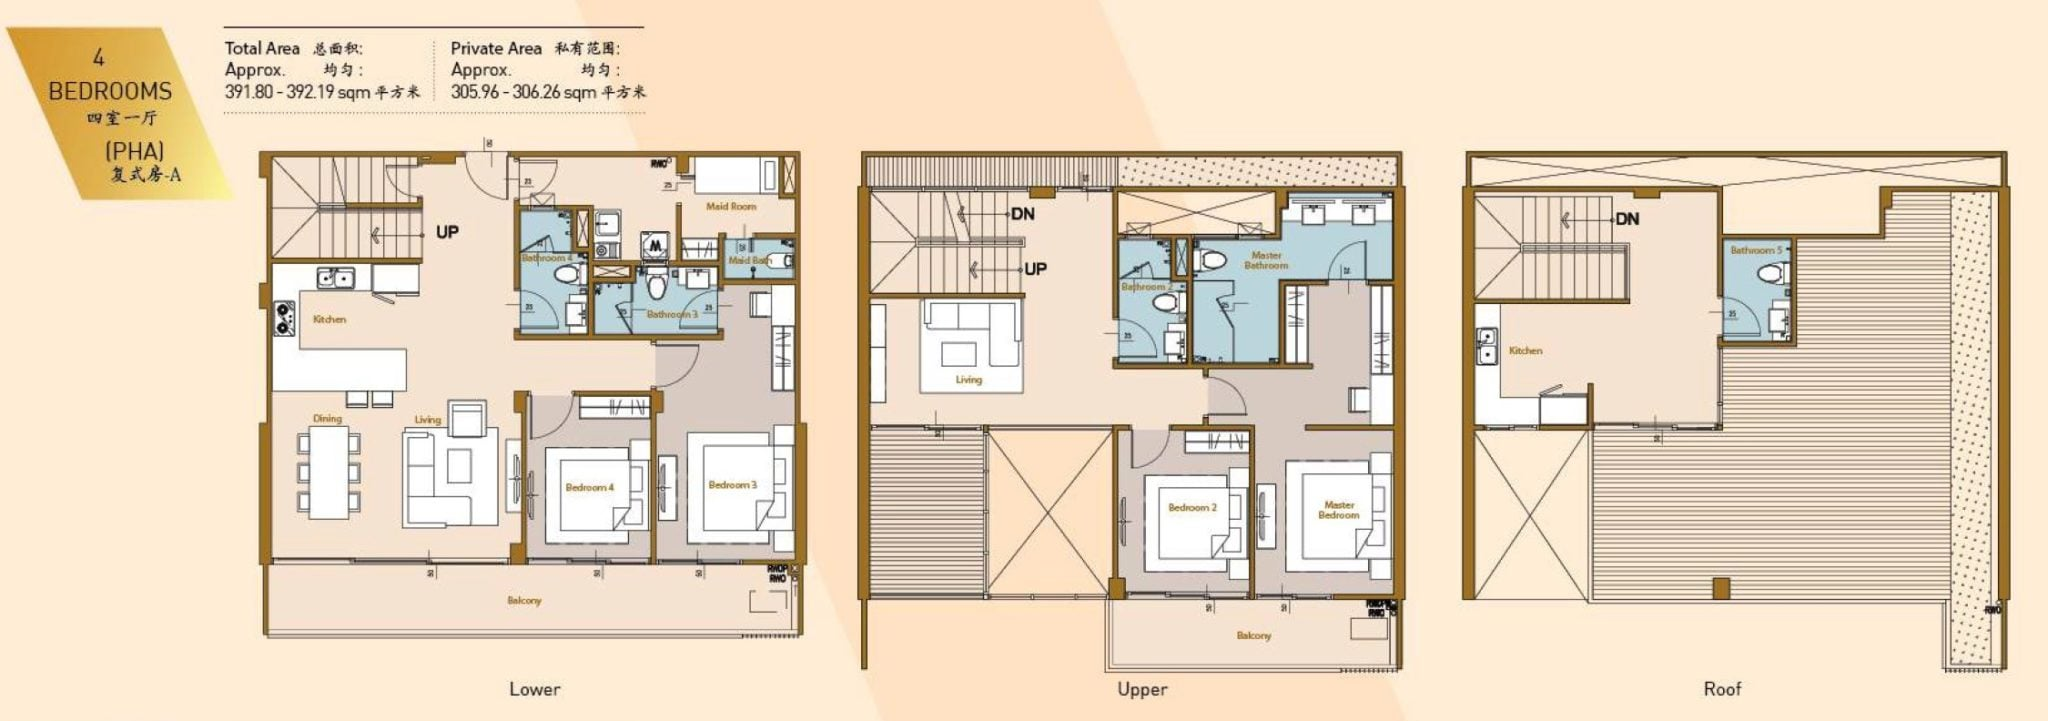 Royal Platinum Floor Plan 4BR Duplex full